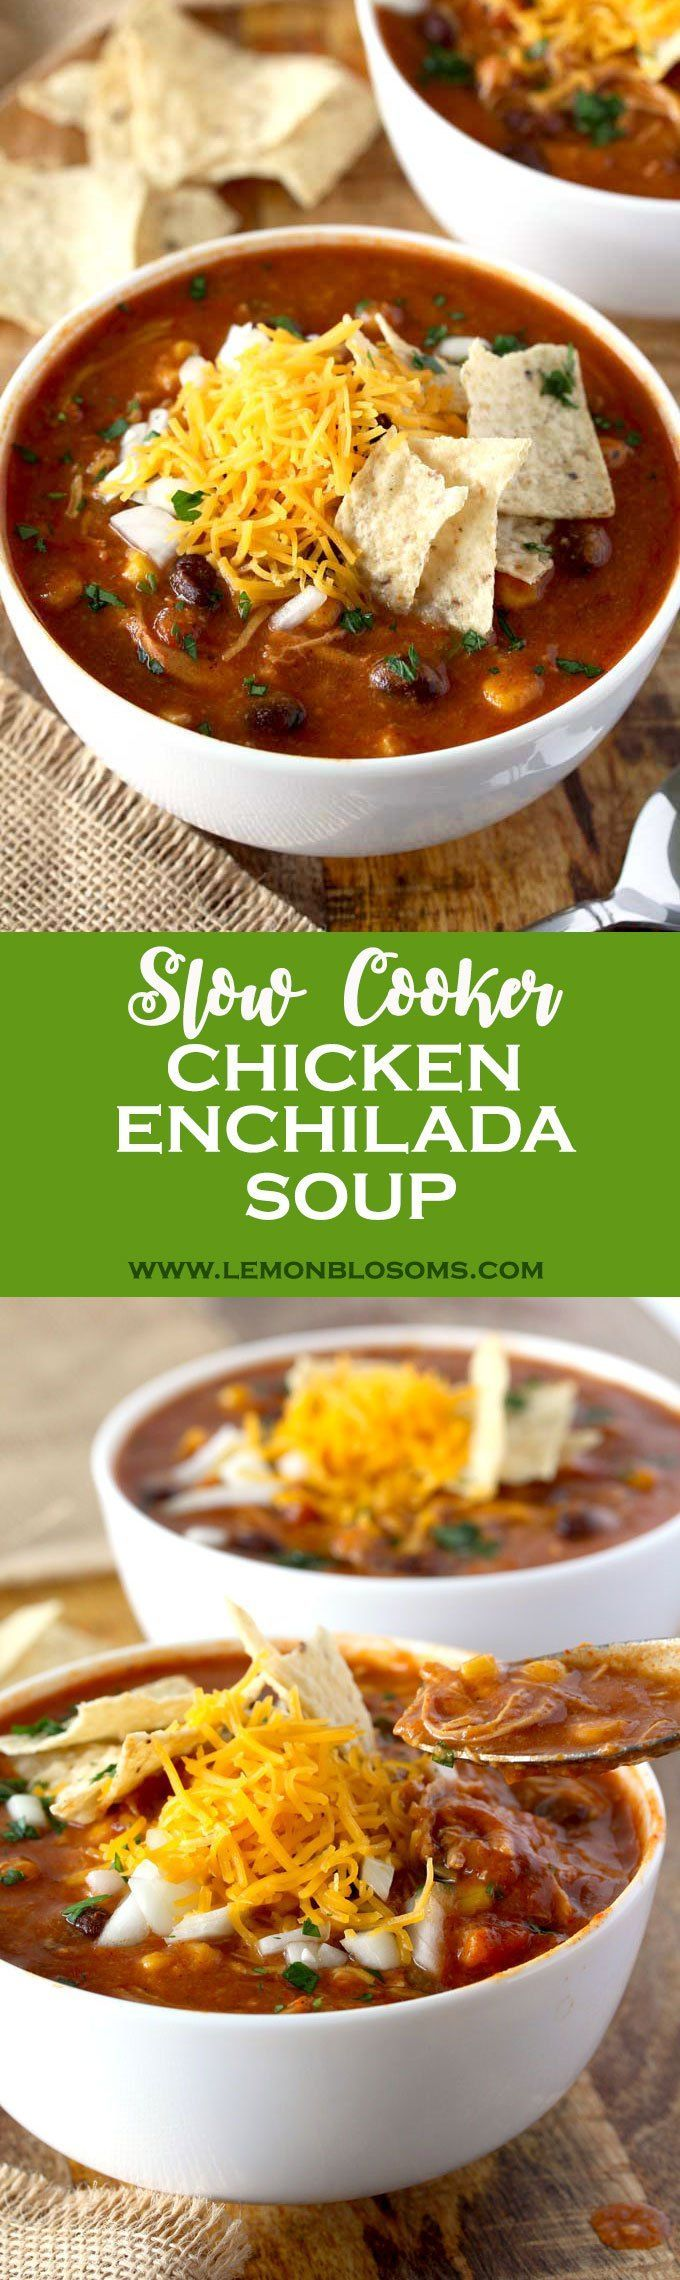 This Slow Cooker Chicken Enchilada Soup is bursting with flavor! Cheesy, creamy and full of shredded chicken, black beans and corn. With only 10 minutes of prep time this soup is pure comfort in a bowl! #slowcooker #crockpot #enchiladasoup #chickenenchilada #soup #comfortfood